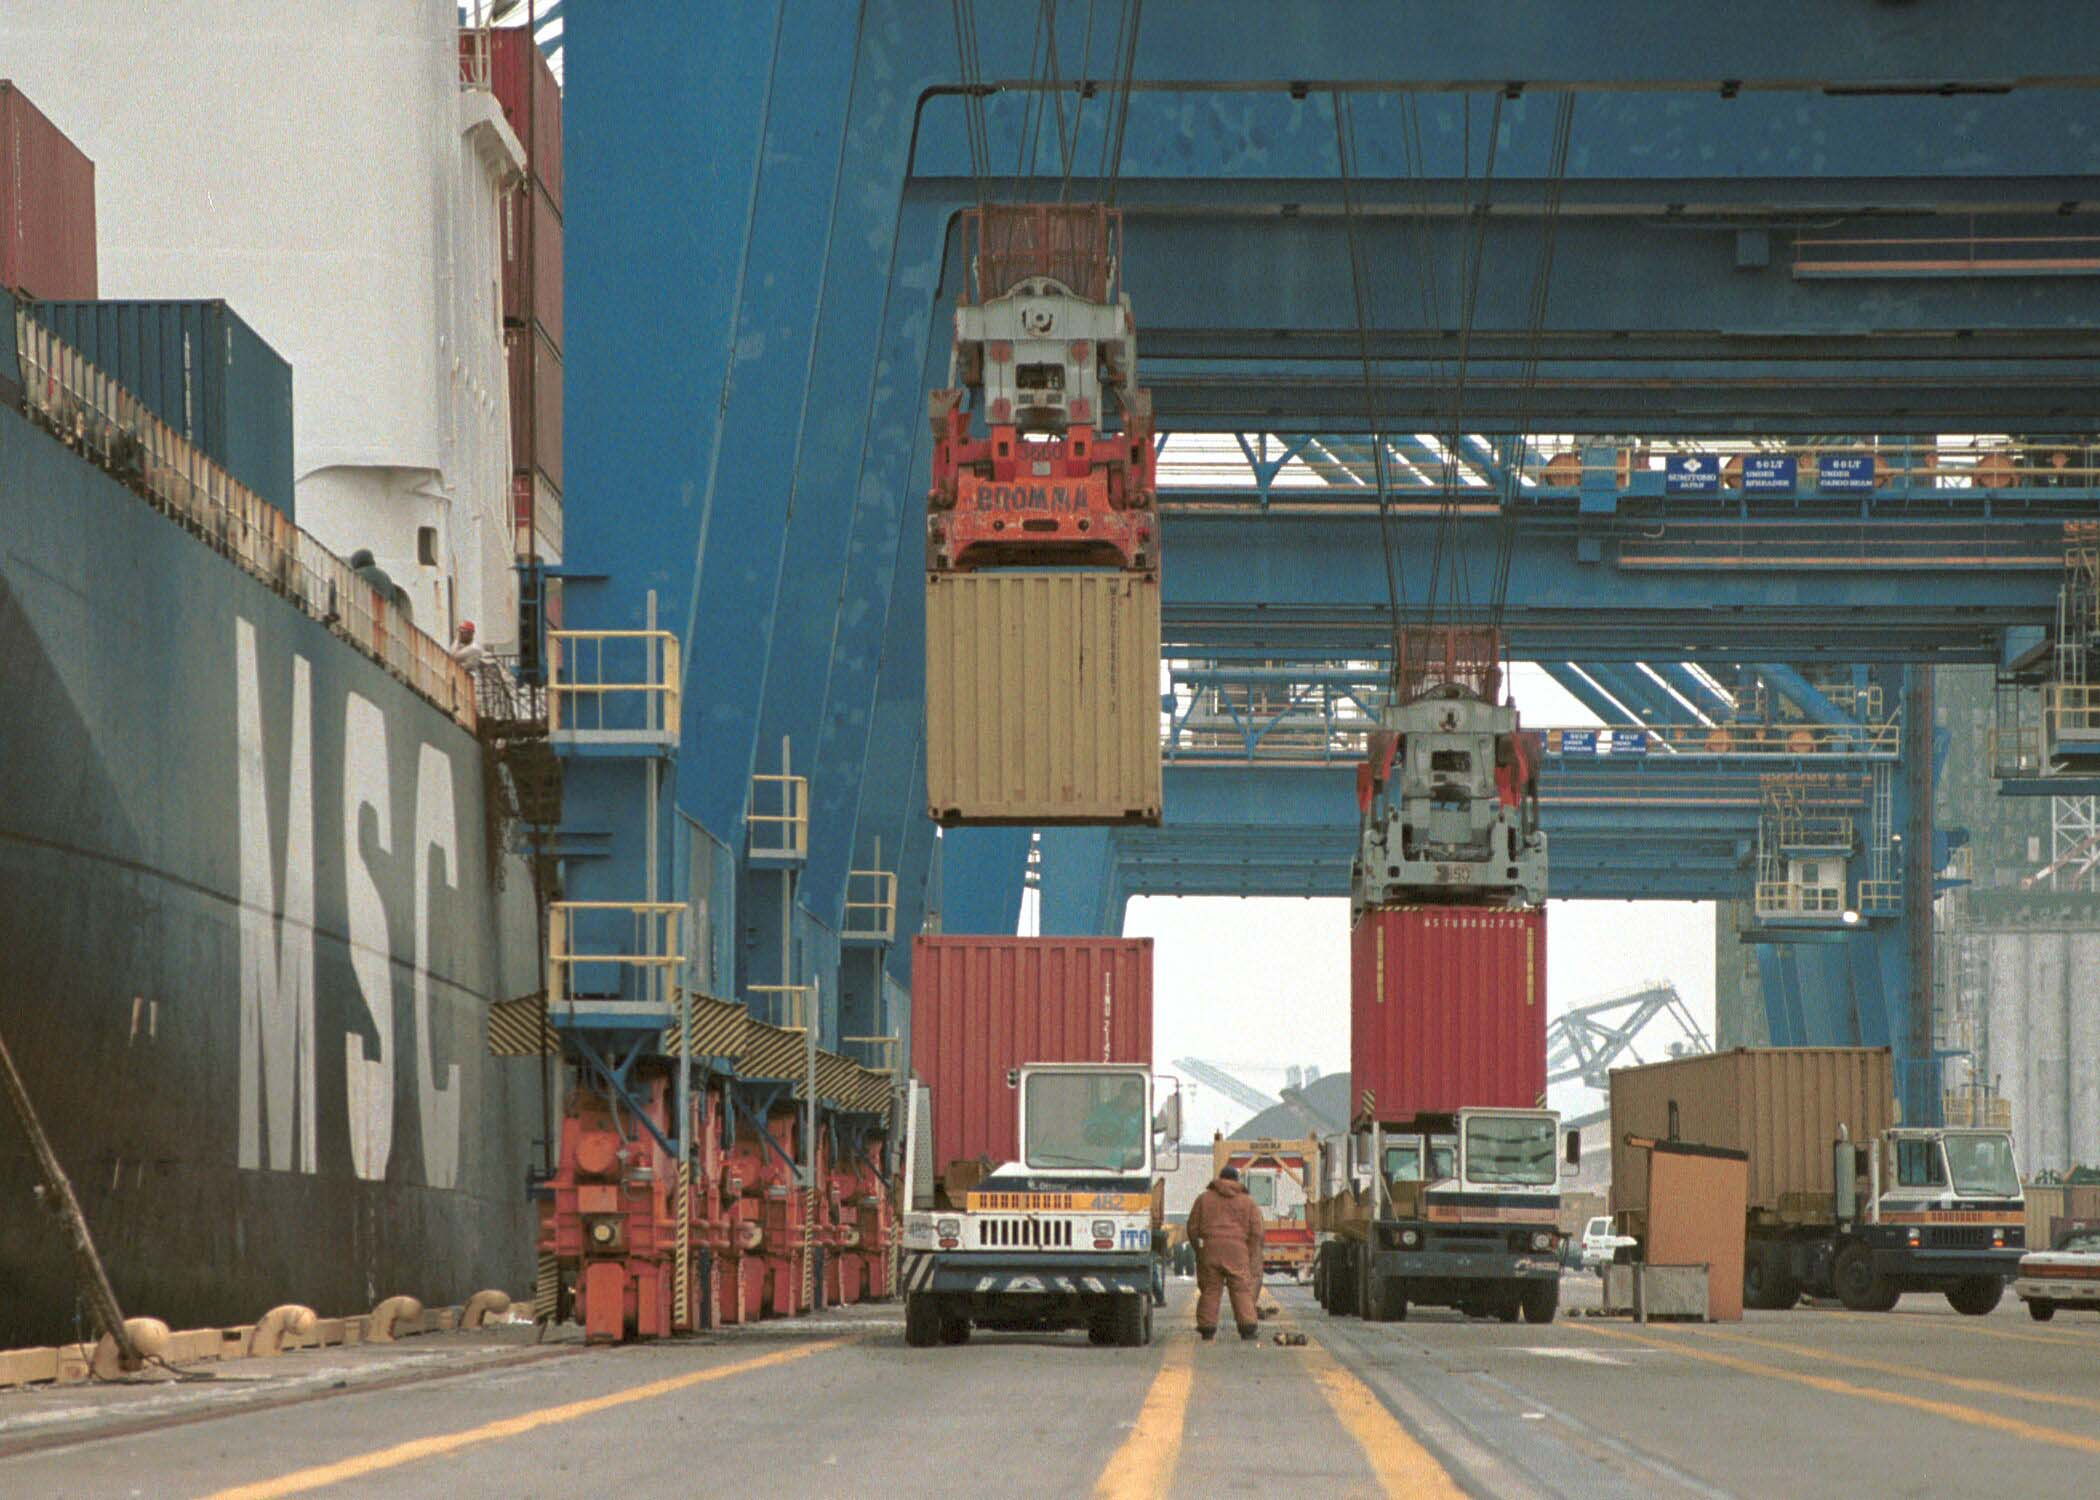 A second deepwater berth is being developed at Seagirt Marine Terminal in Baltimore